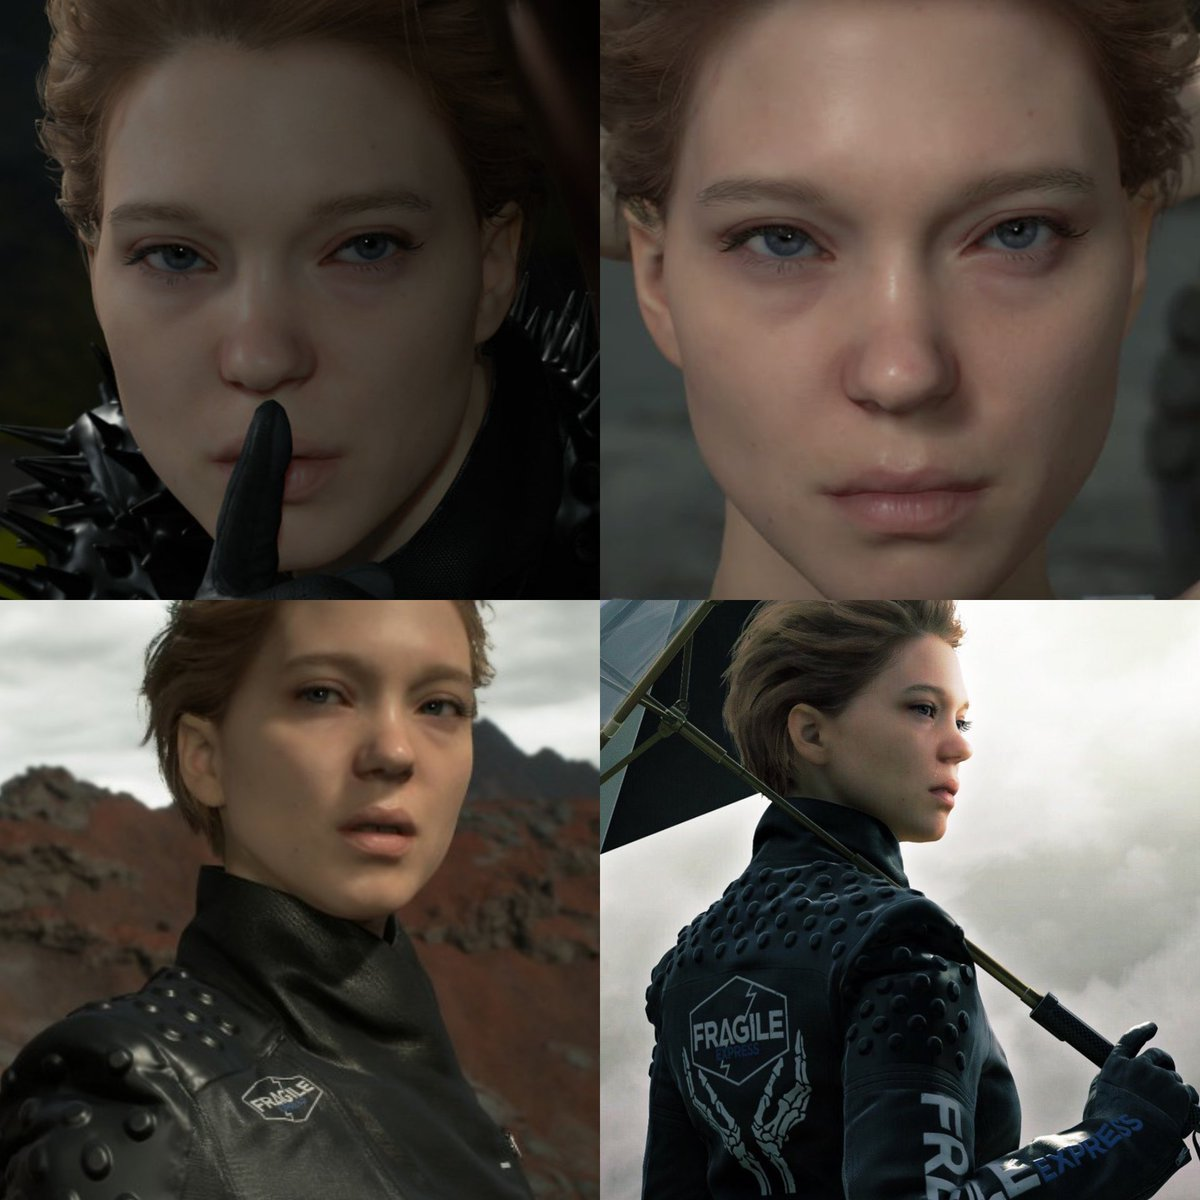 Death Stranding On Twitter Describe Fragile In Three Words Deathstranding Big thanks to sony interactive entertainment for sending me a copy of this game. death stranding on twitter describe